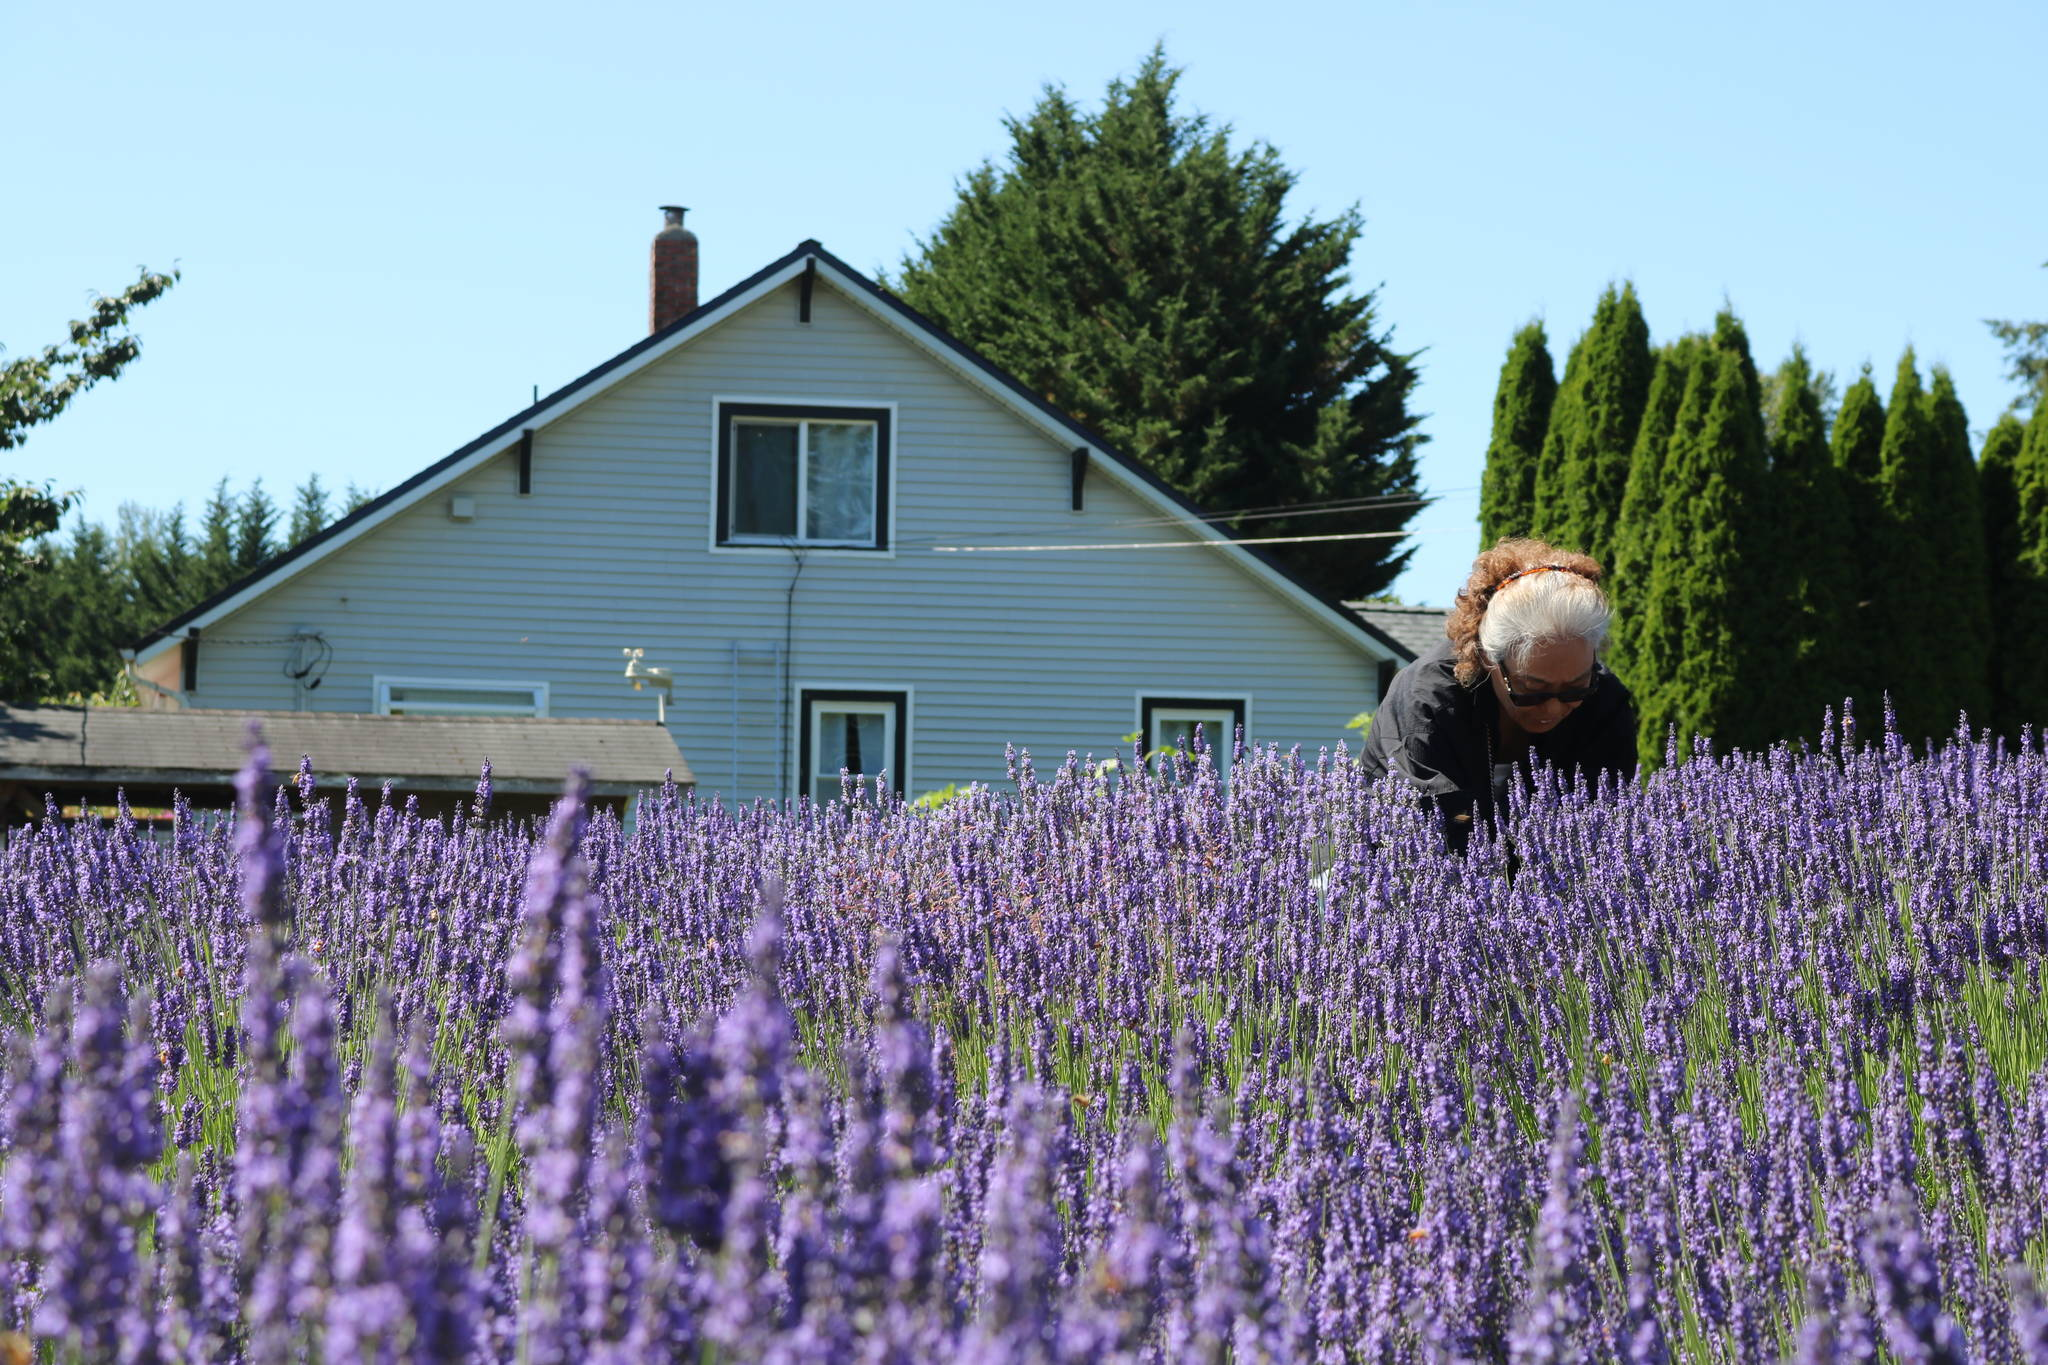 A woman gathers flowers at Snofalls Lavender Farm outside Fall City on July 18, 2020. Aaron Kunkler/staff photo